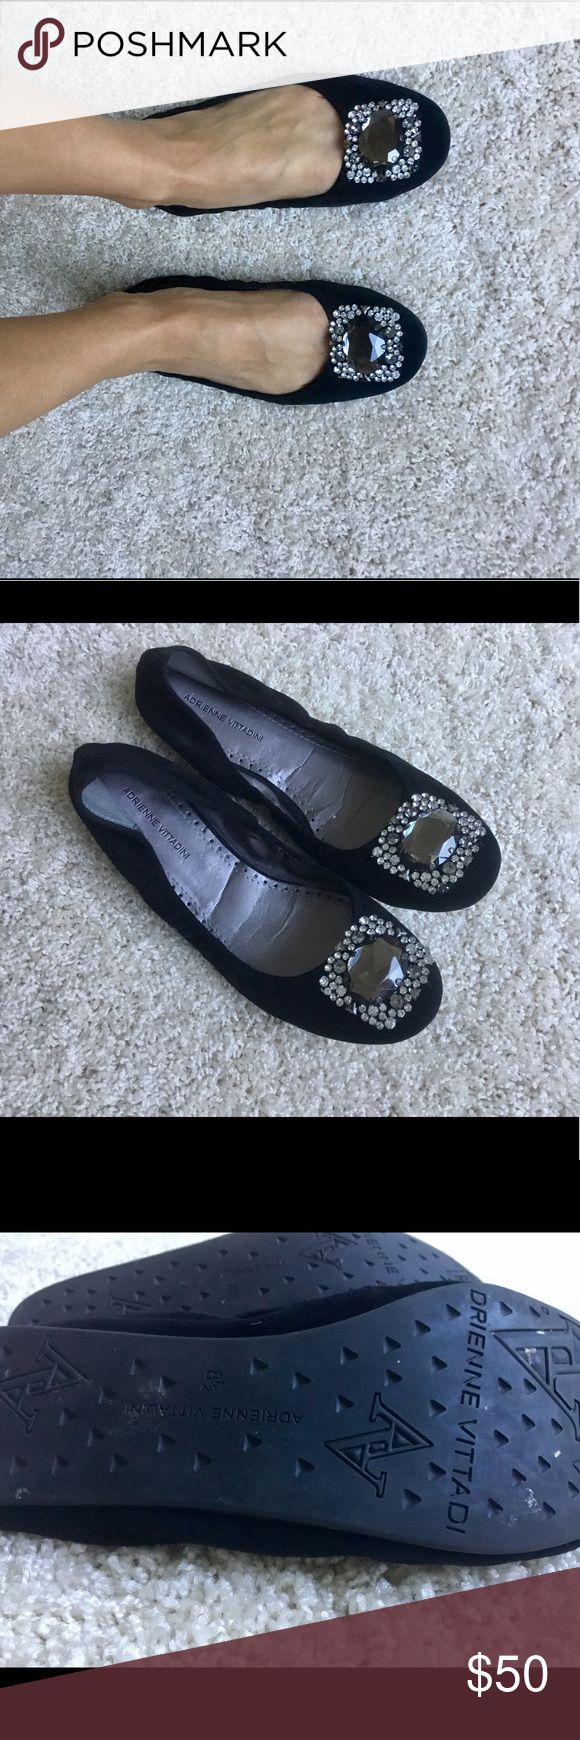 Soft Suede Ballet Flat with Crystal Embellishment Worn one, excellent condition - these are super soft and flexible, which means they don't rub roughly on the ankle! Adrienne Vittadini Shoes Flats & Loafers